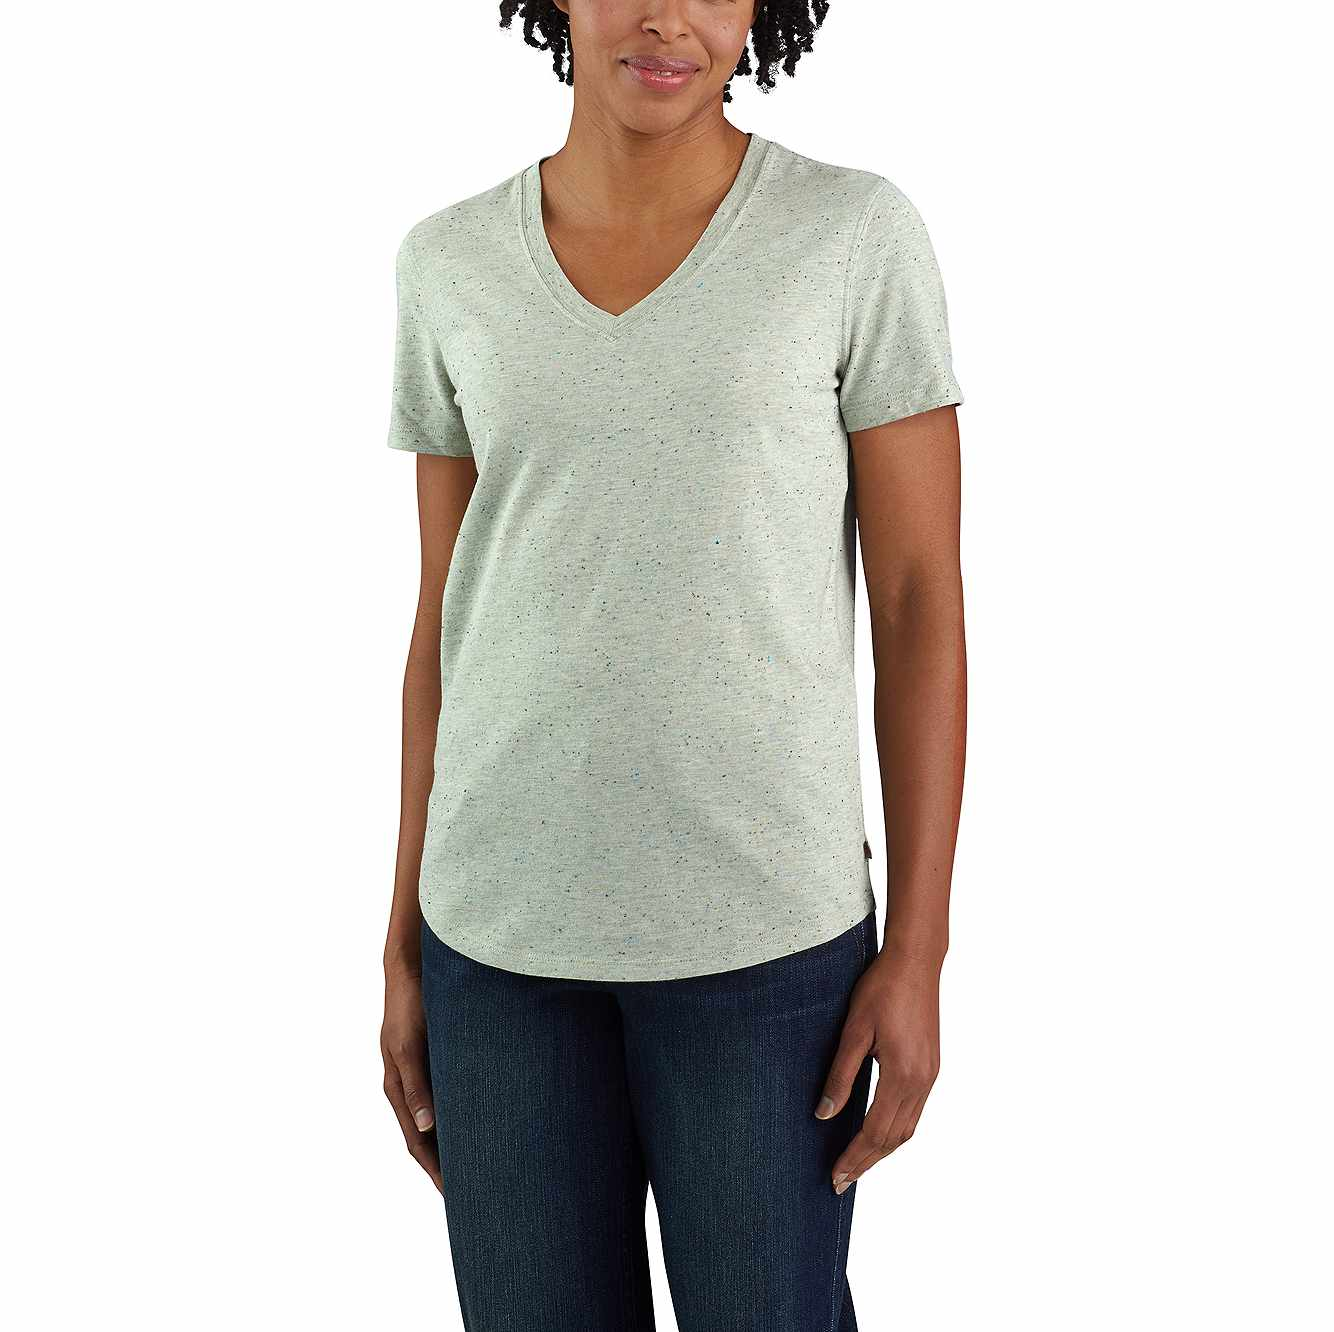 Picture of Carhartt® Relaxed Fit Midweight Short Sleeve V neck T-Shirt in Tinted Sage Heather Nep